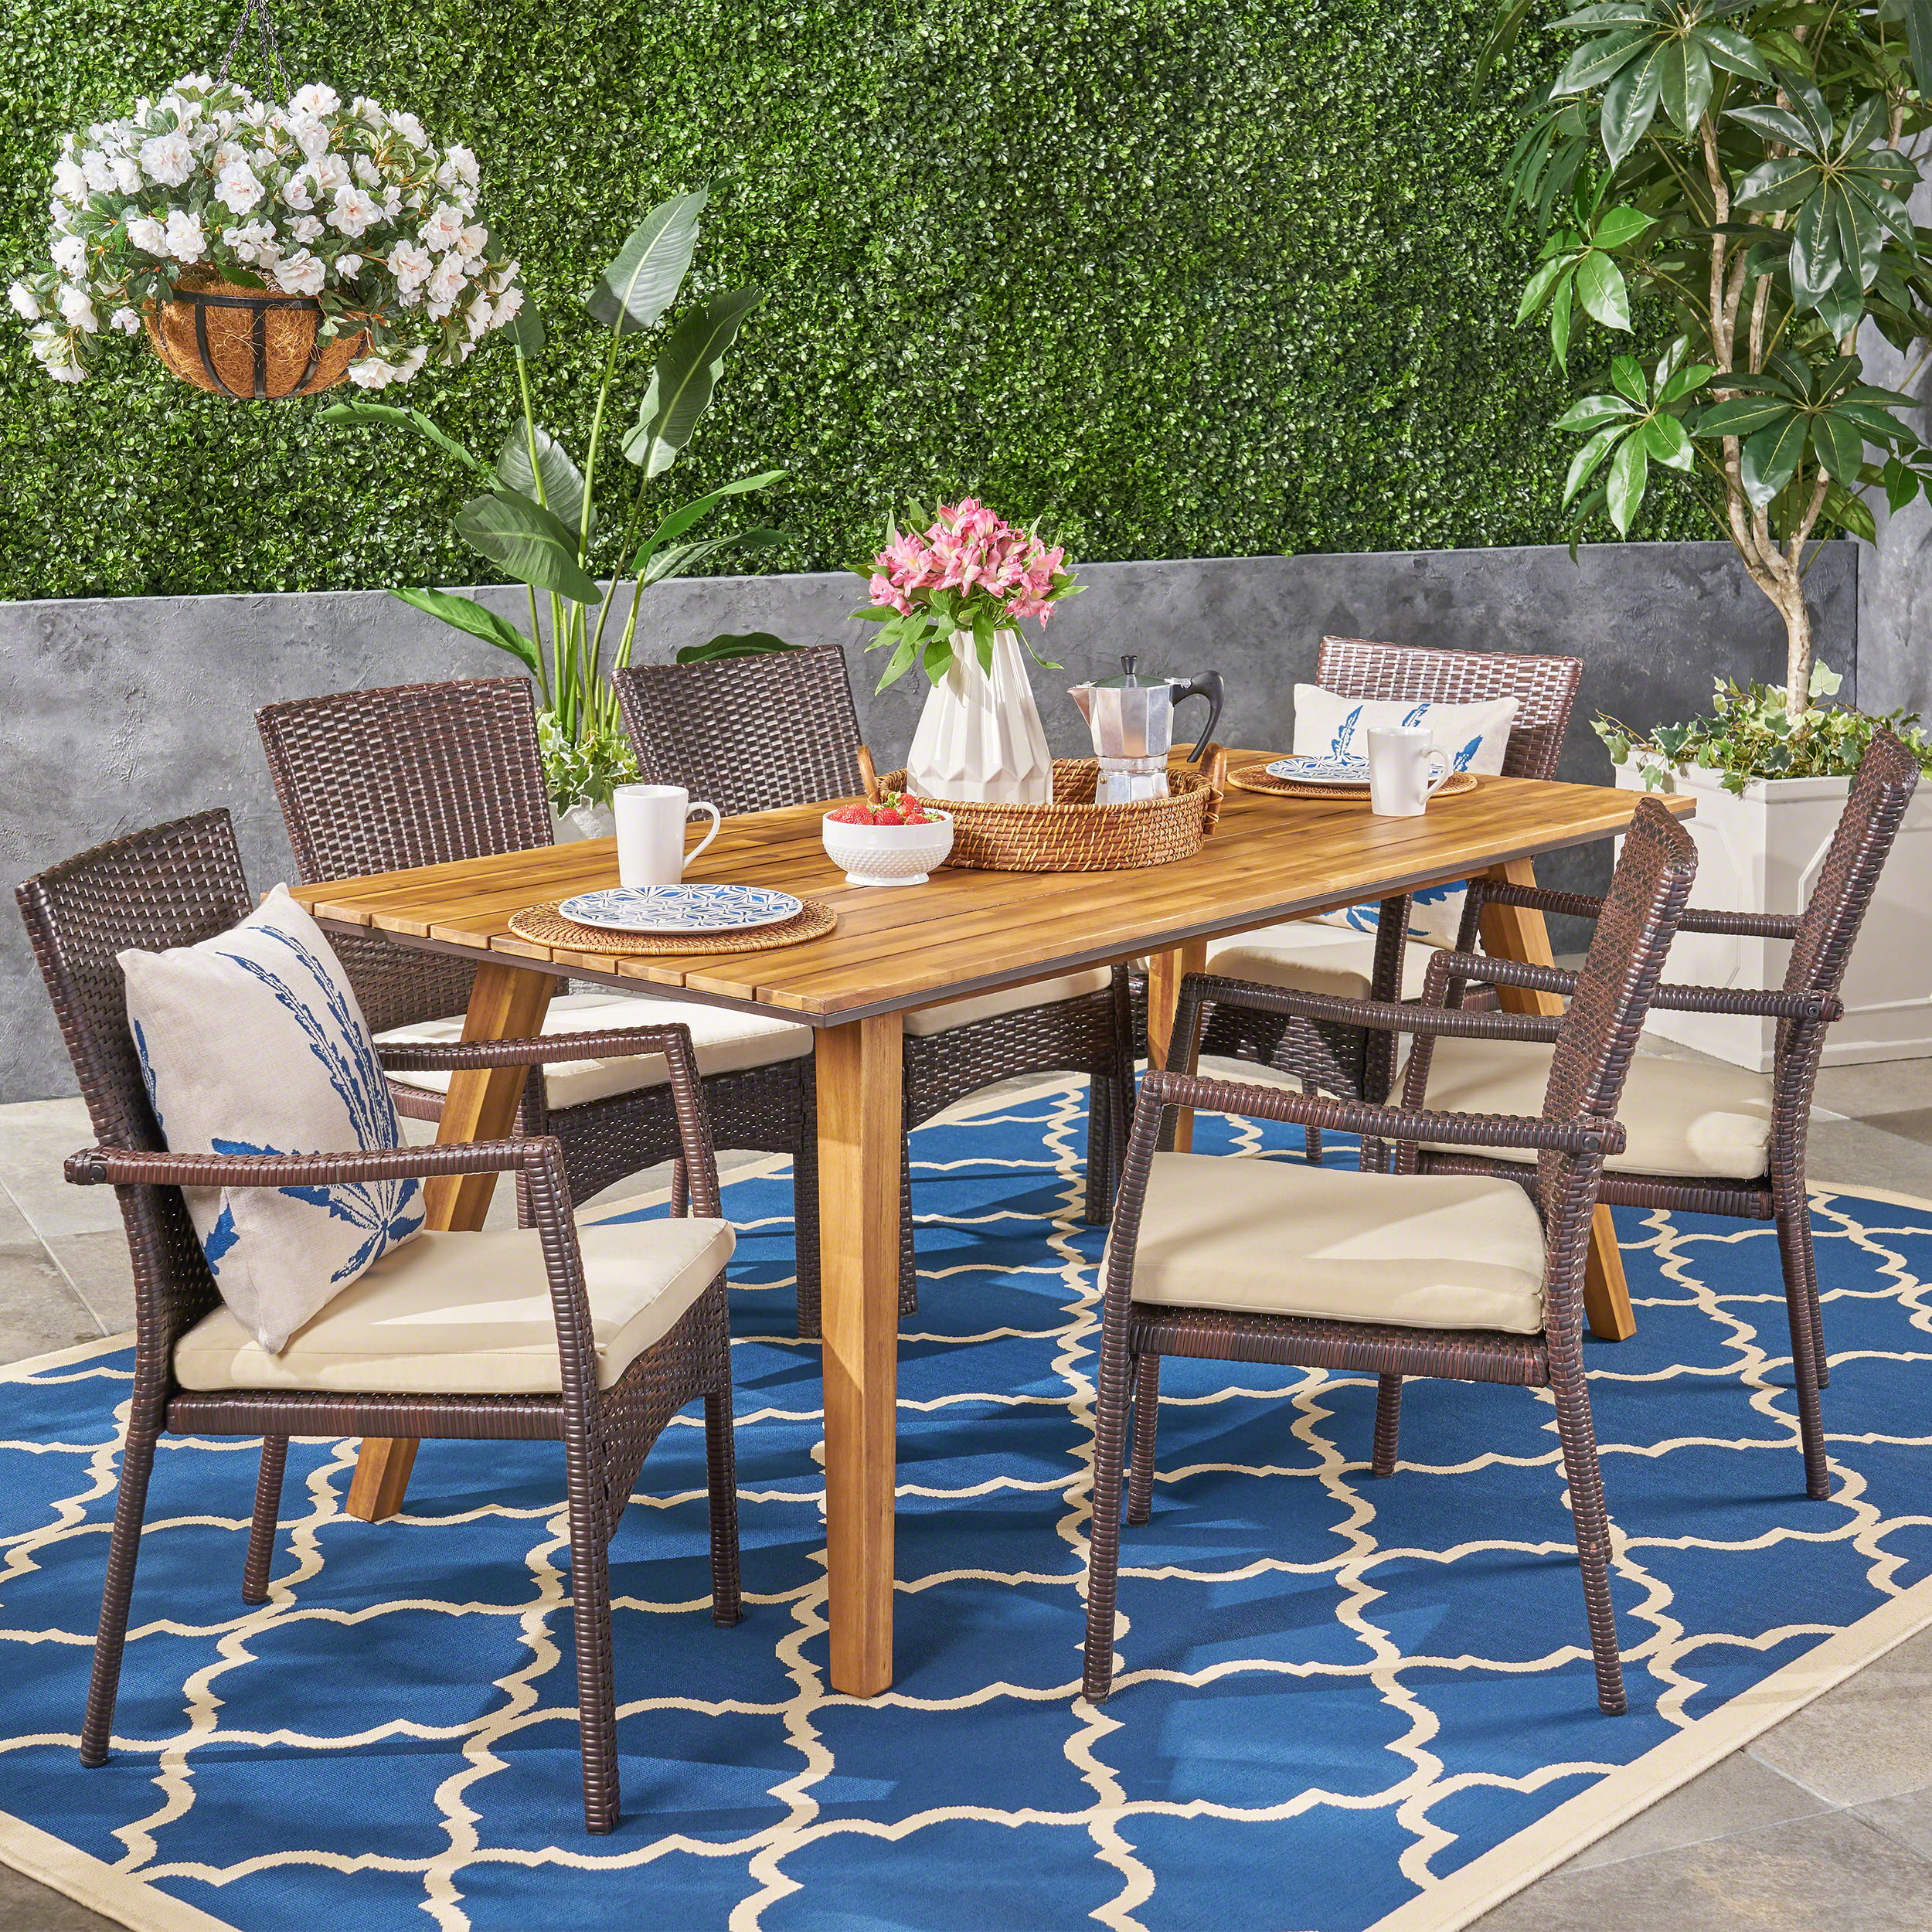 Moshe outdoor 7 piece acacia wood dining set with wicker chairs brown teak cream walmart com